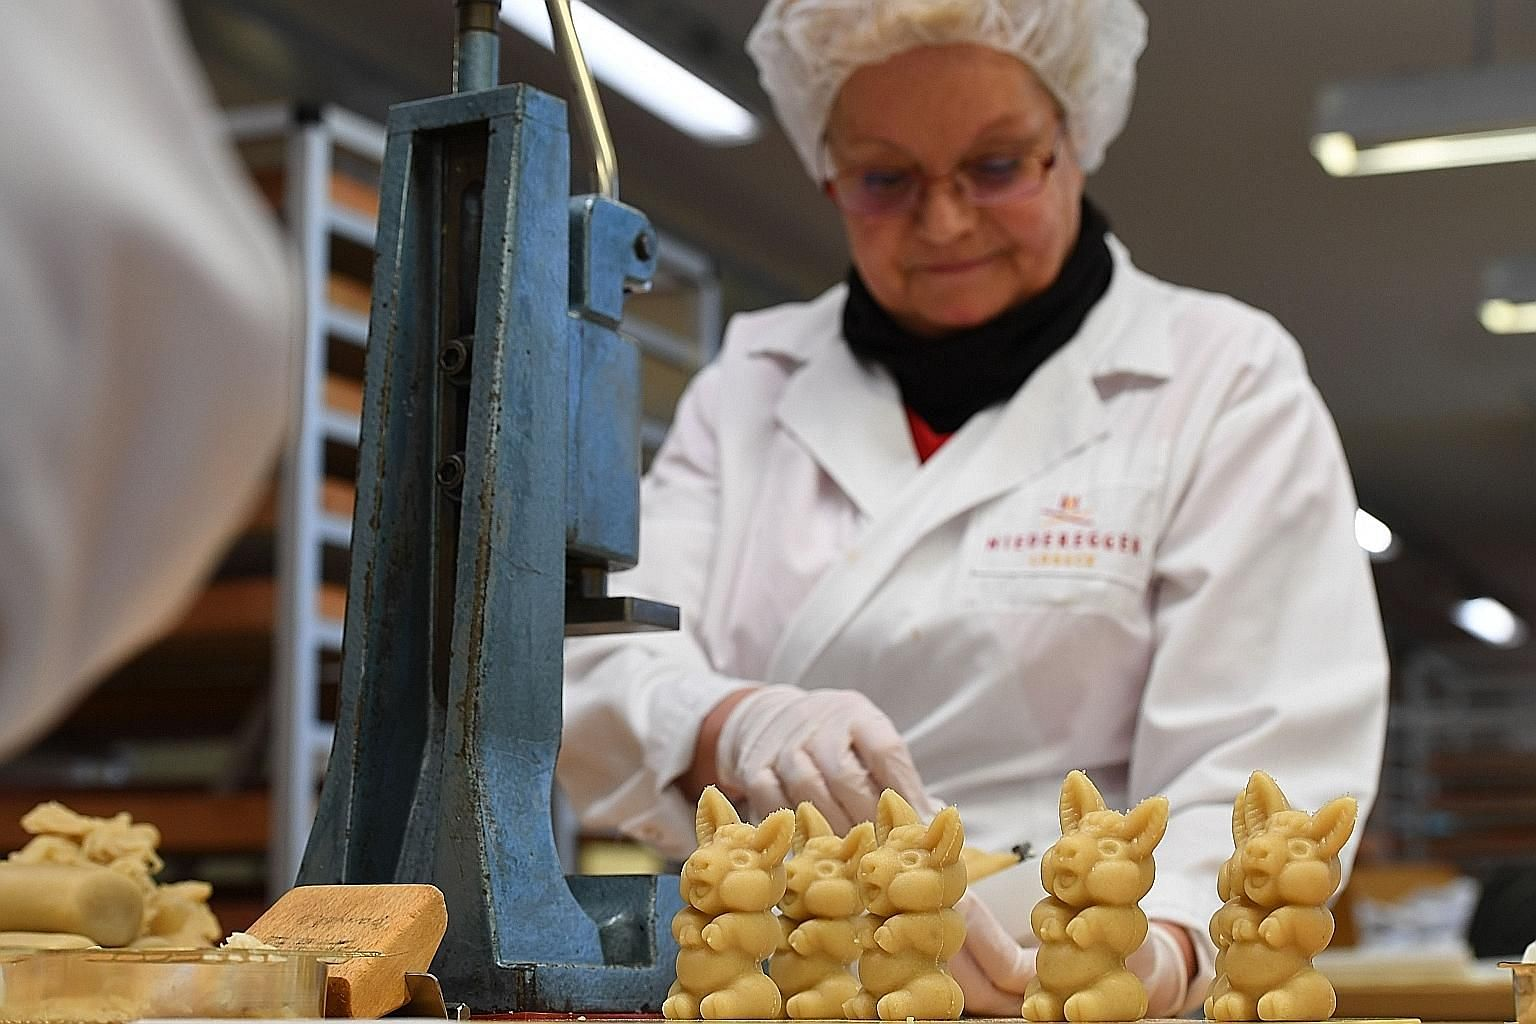 An employee of traditional confectionery maker JG Niederegger preparing pigs made of fresh marzipan in Luebeck, Germany. For Germans, no Christmas is complete without marzipan, the sugar and almond treat that dates back to the Middle Ages. Market pre